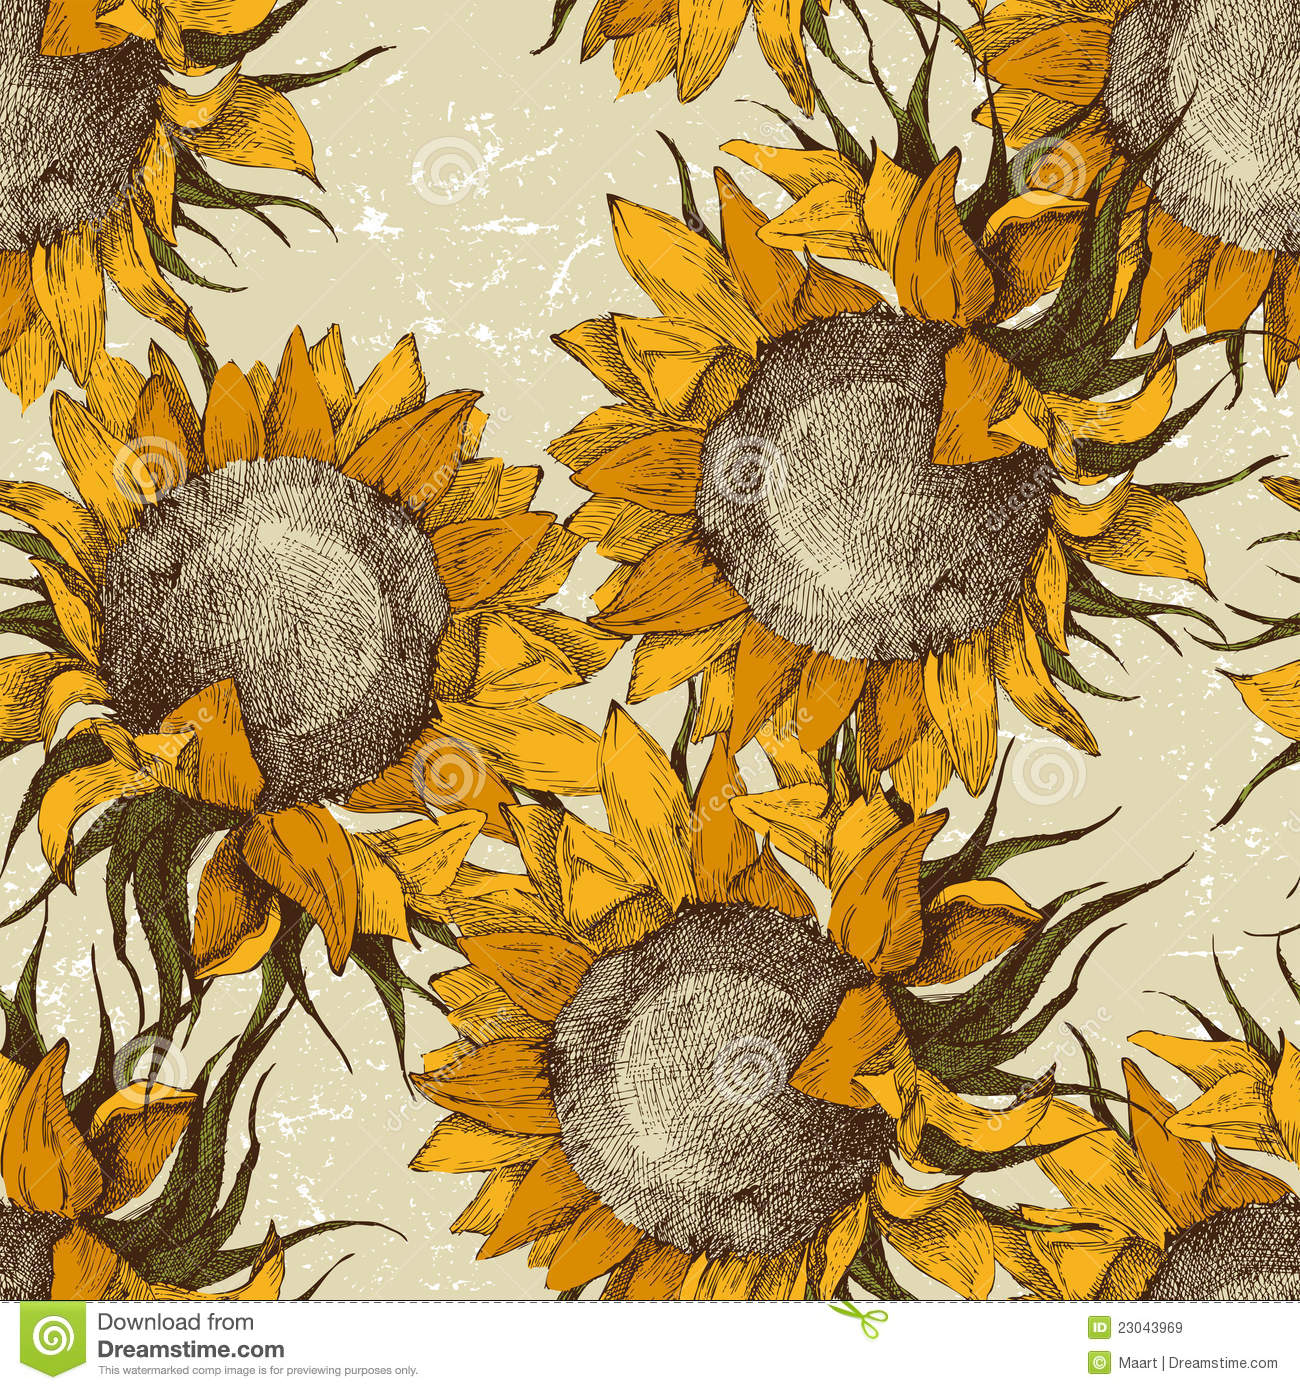 Fall Leaf Pattern Wallpaper Seamless Ornament With Sunflowers Stock Vector